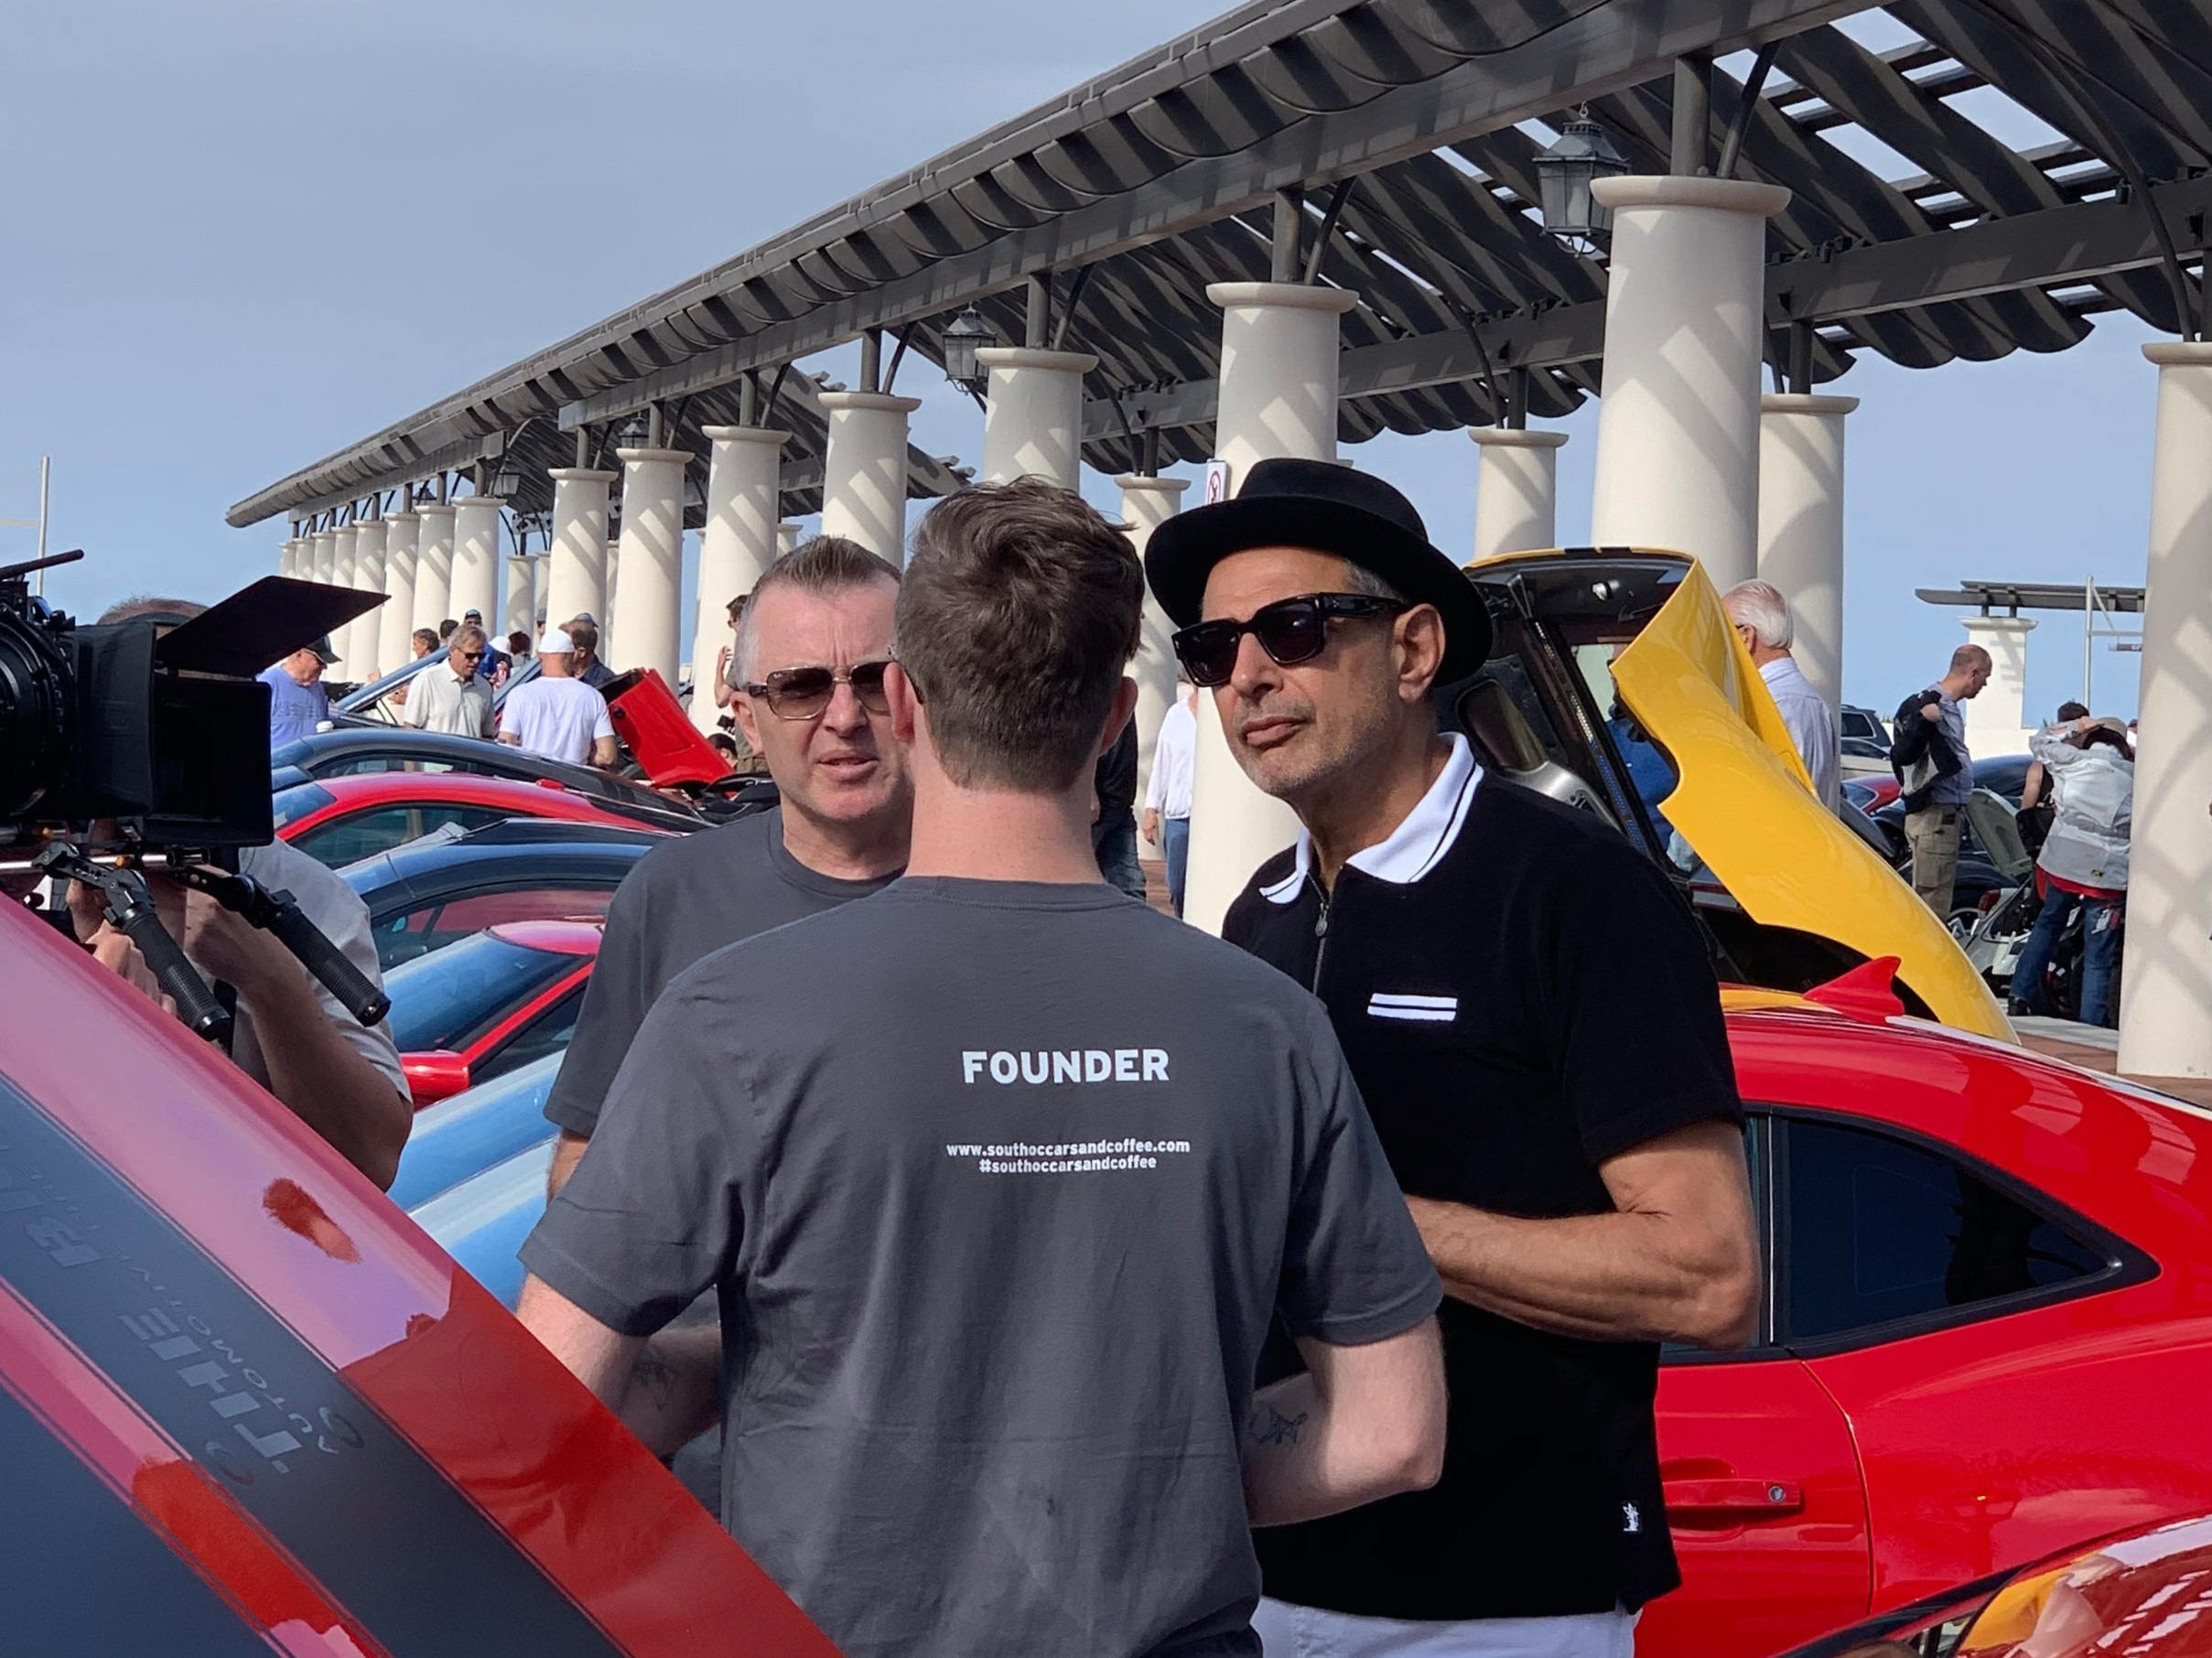 Jeff Goldblum shooting a tv series at South OC Cars and coffee